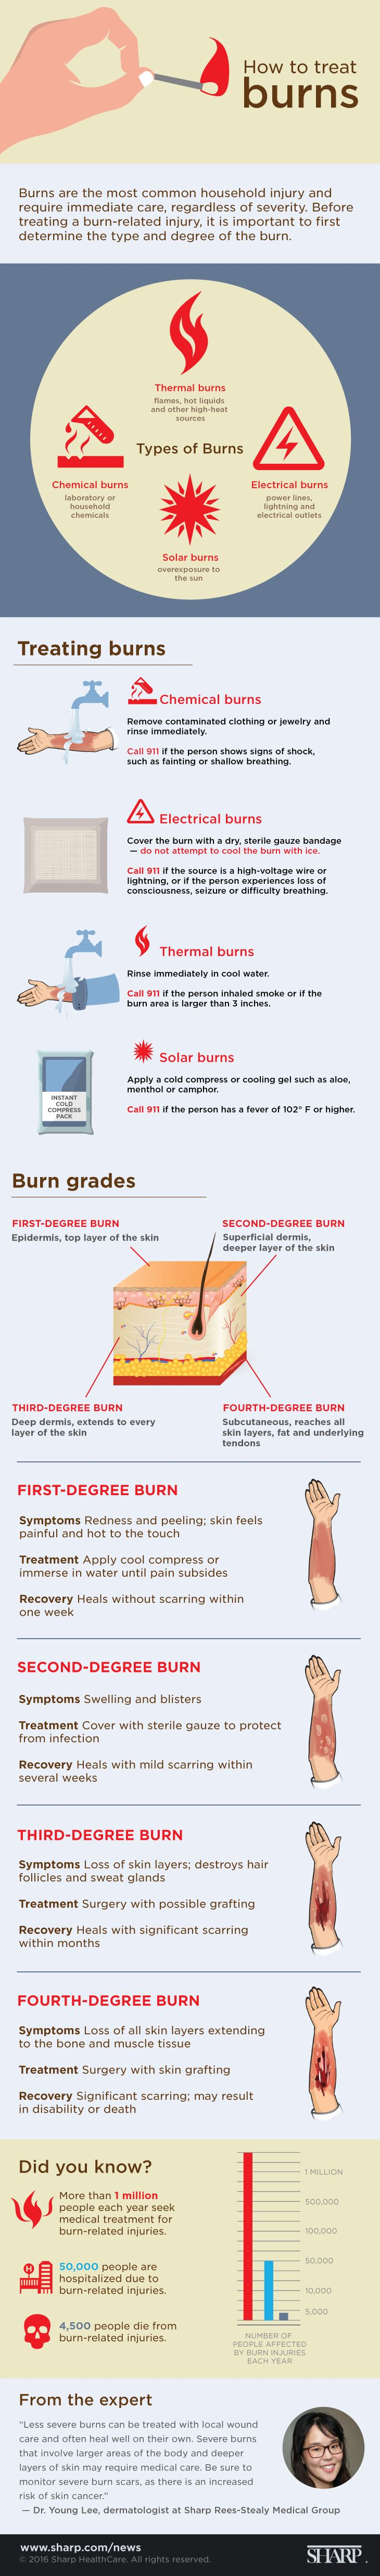 How to Treat Burns Infographic. A very complete infographic with the types of burns that exist according to source such as: thermal, chemical, electrical and solar; and according to degree. Visit our website to learn more about first aid: http://insidefirstaid.com/ #burns #first #aid